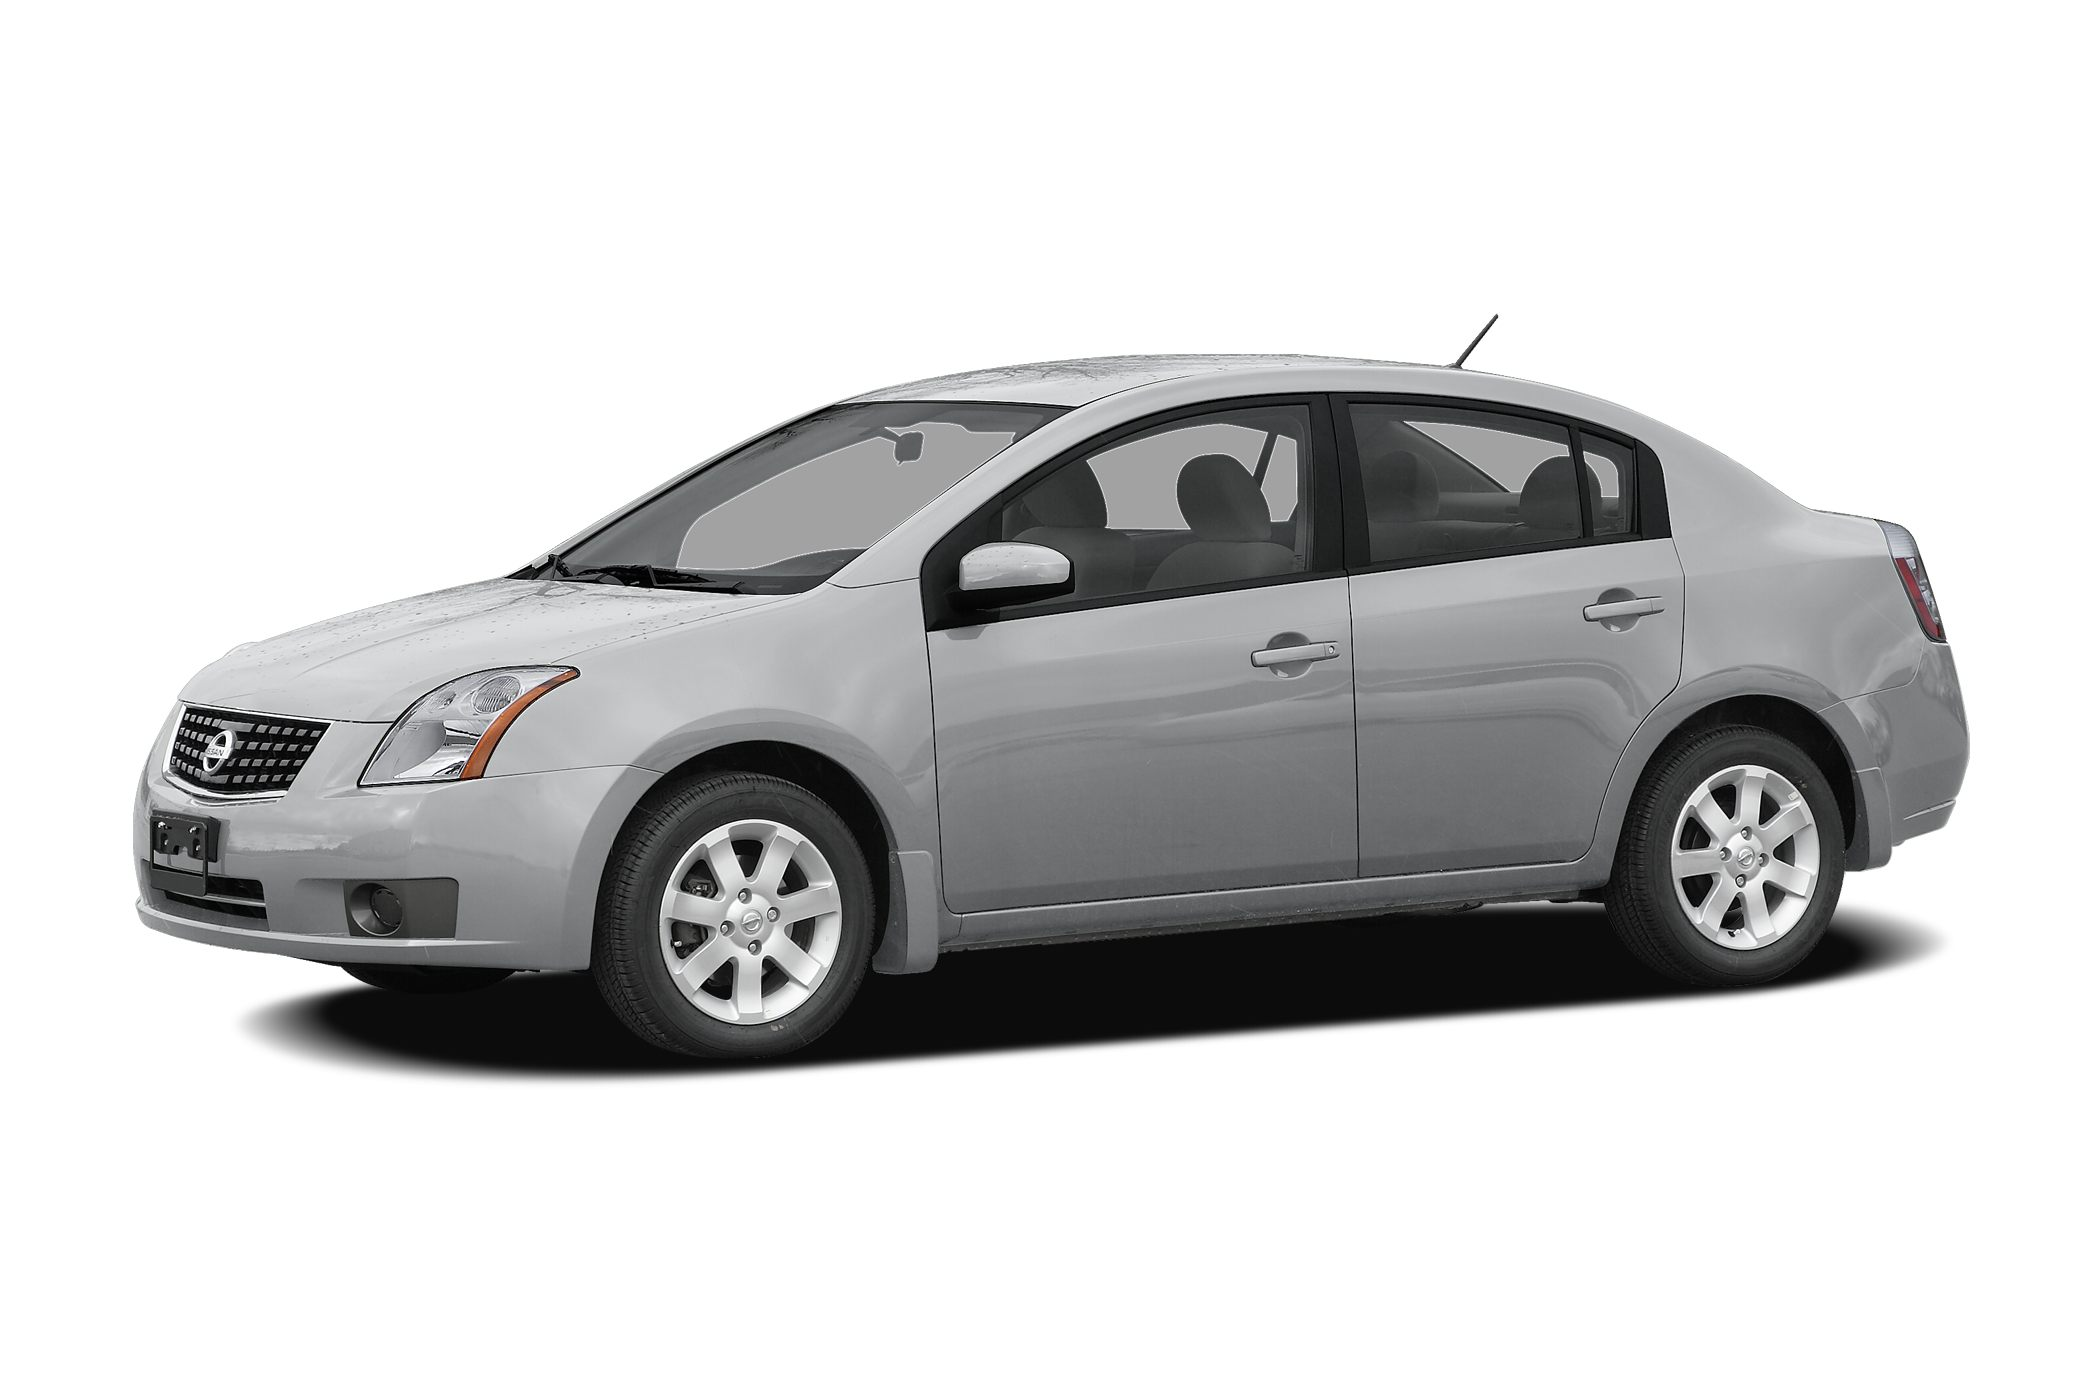 2007 Nissan Sentra 2.0 Sedan for sale in Glen Burnie for $7,995 with 87,792 miles